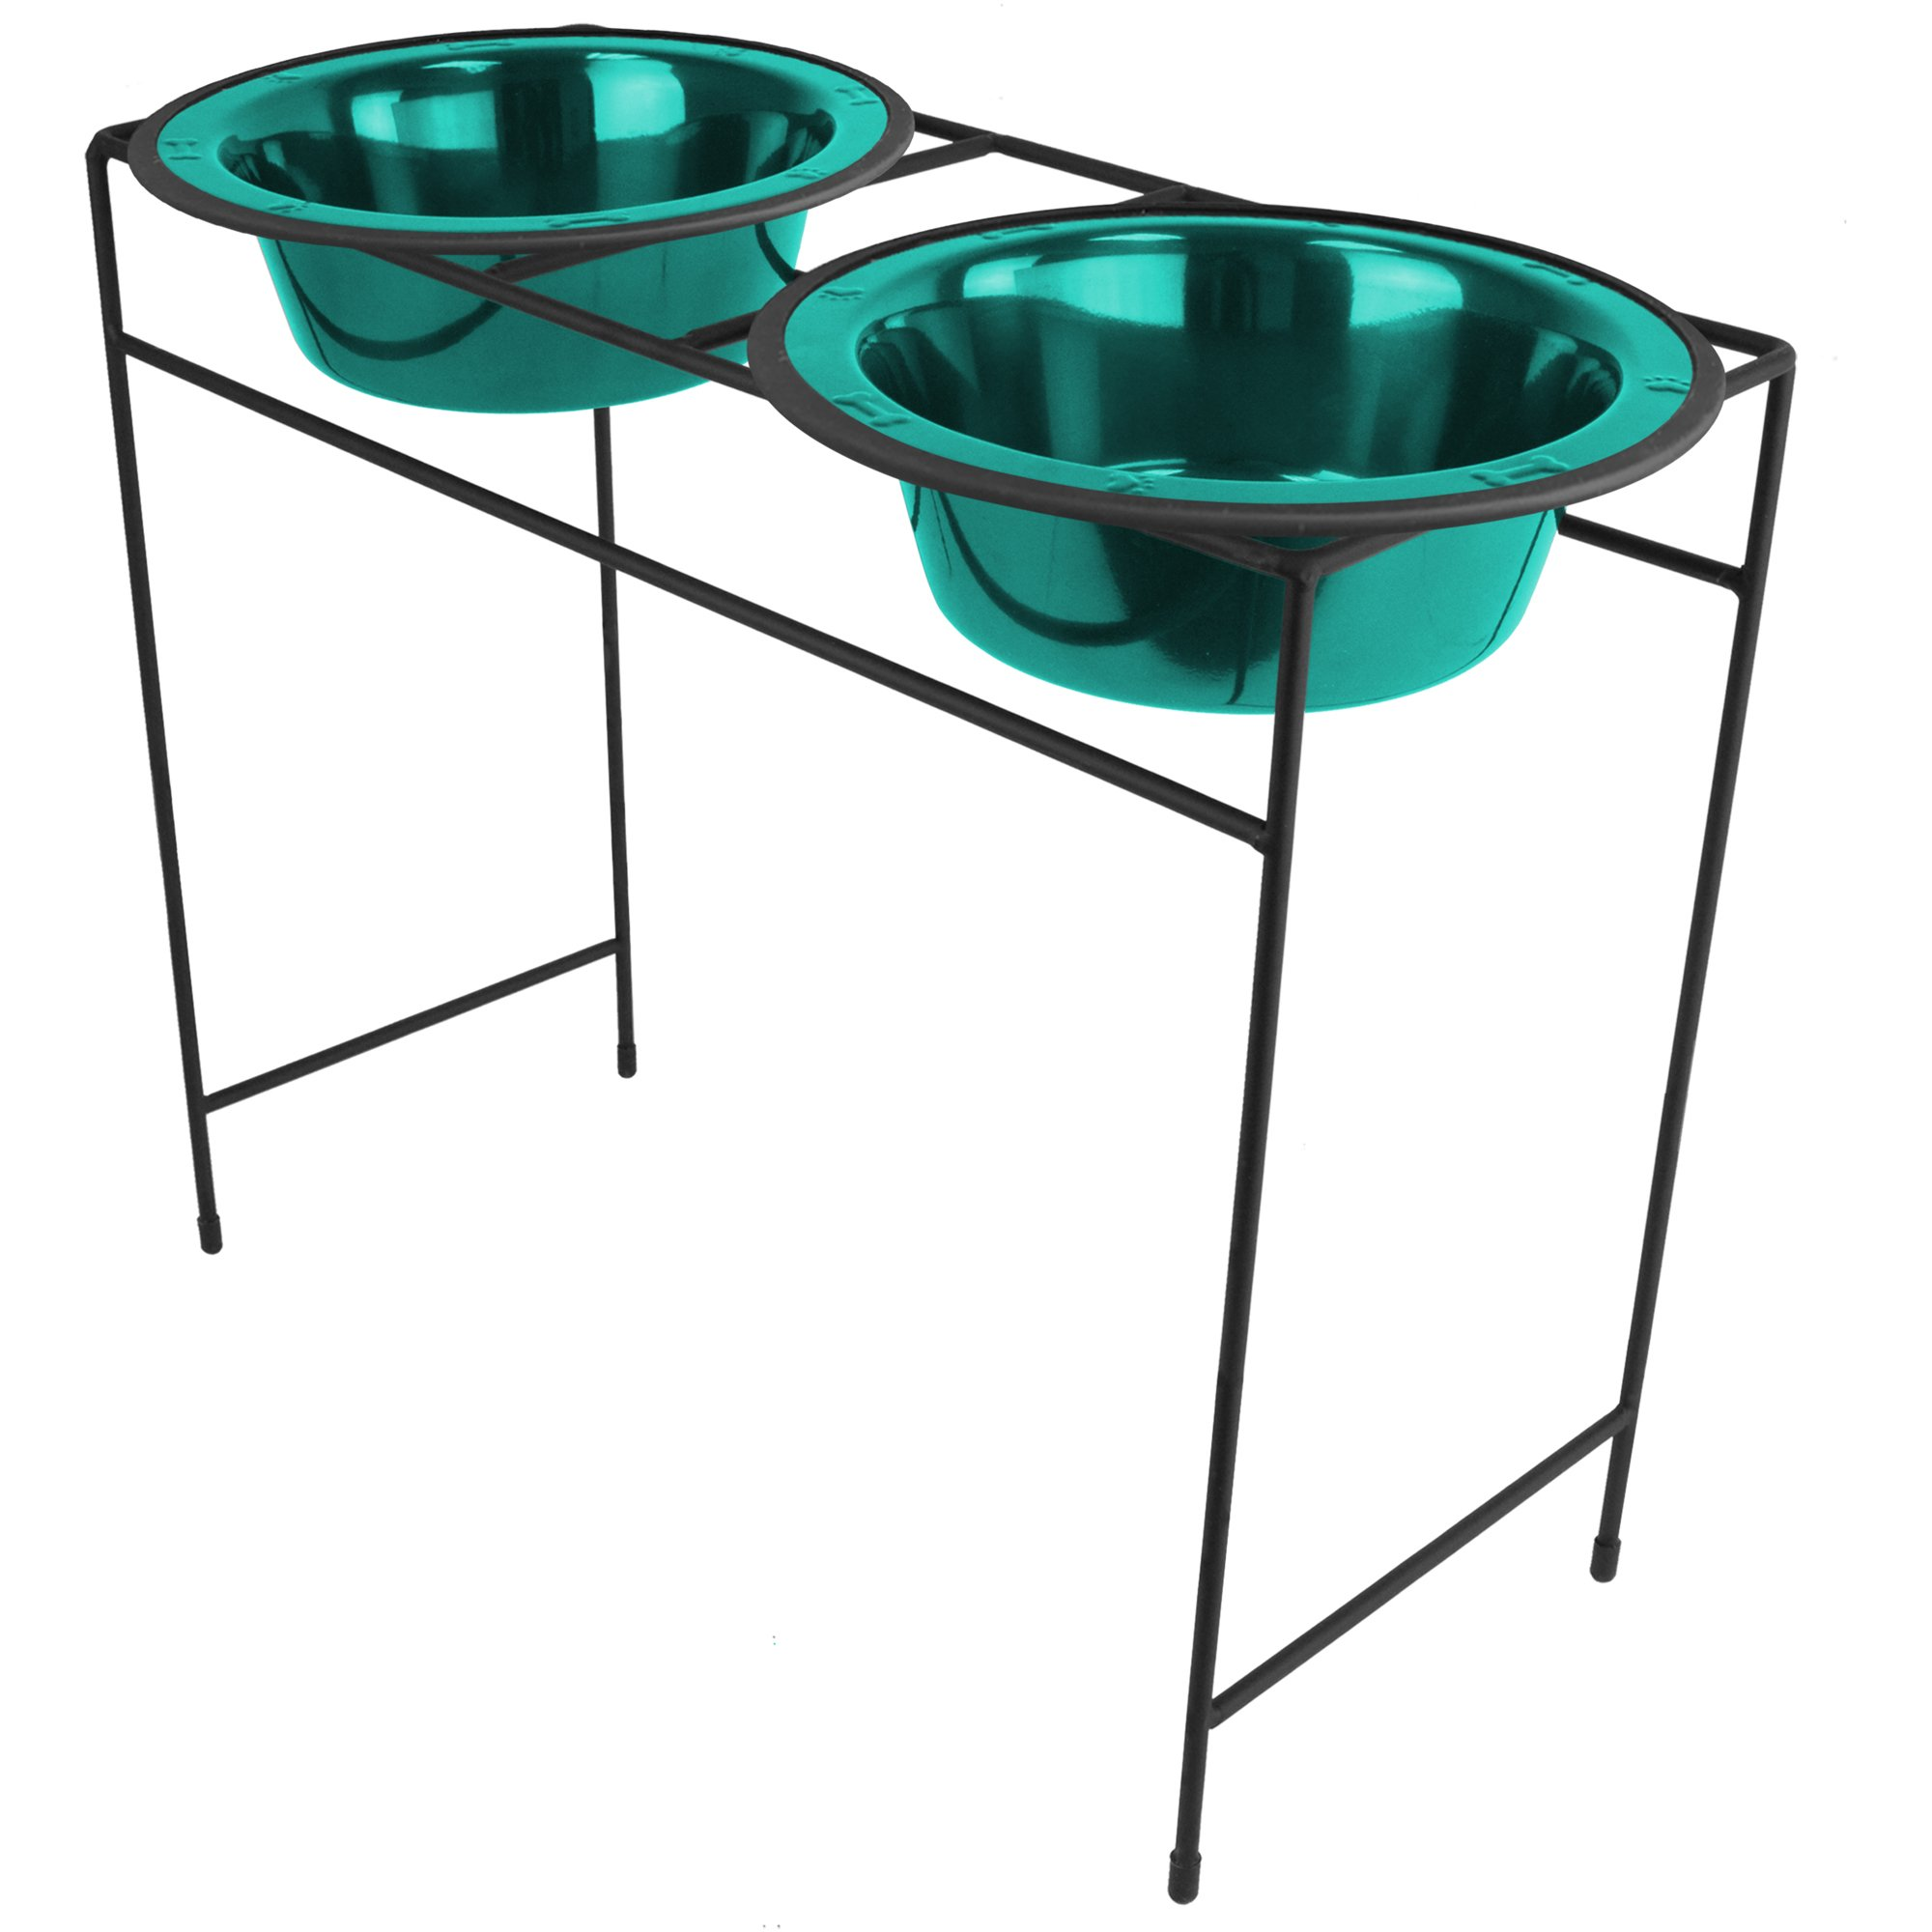 Platinum Pets Double Diner Feeder with Stainless Steel Dog Bowls, 10 cup/80 oz, Caribbean Teal